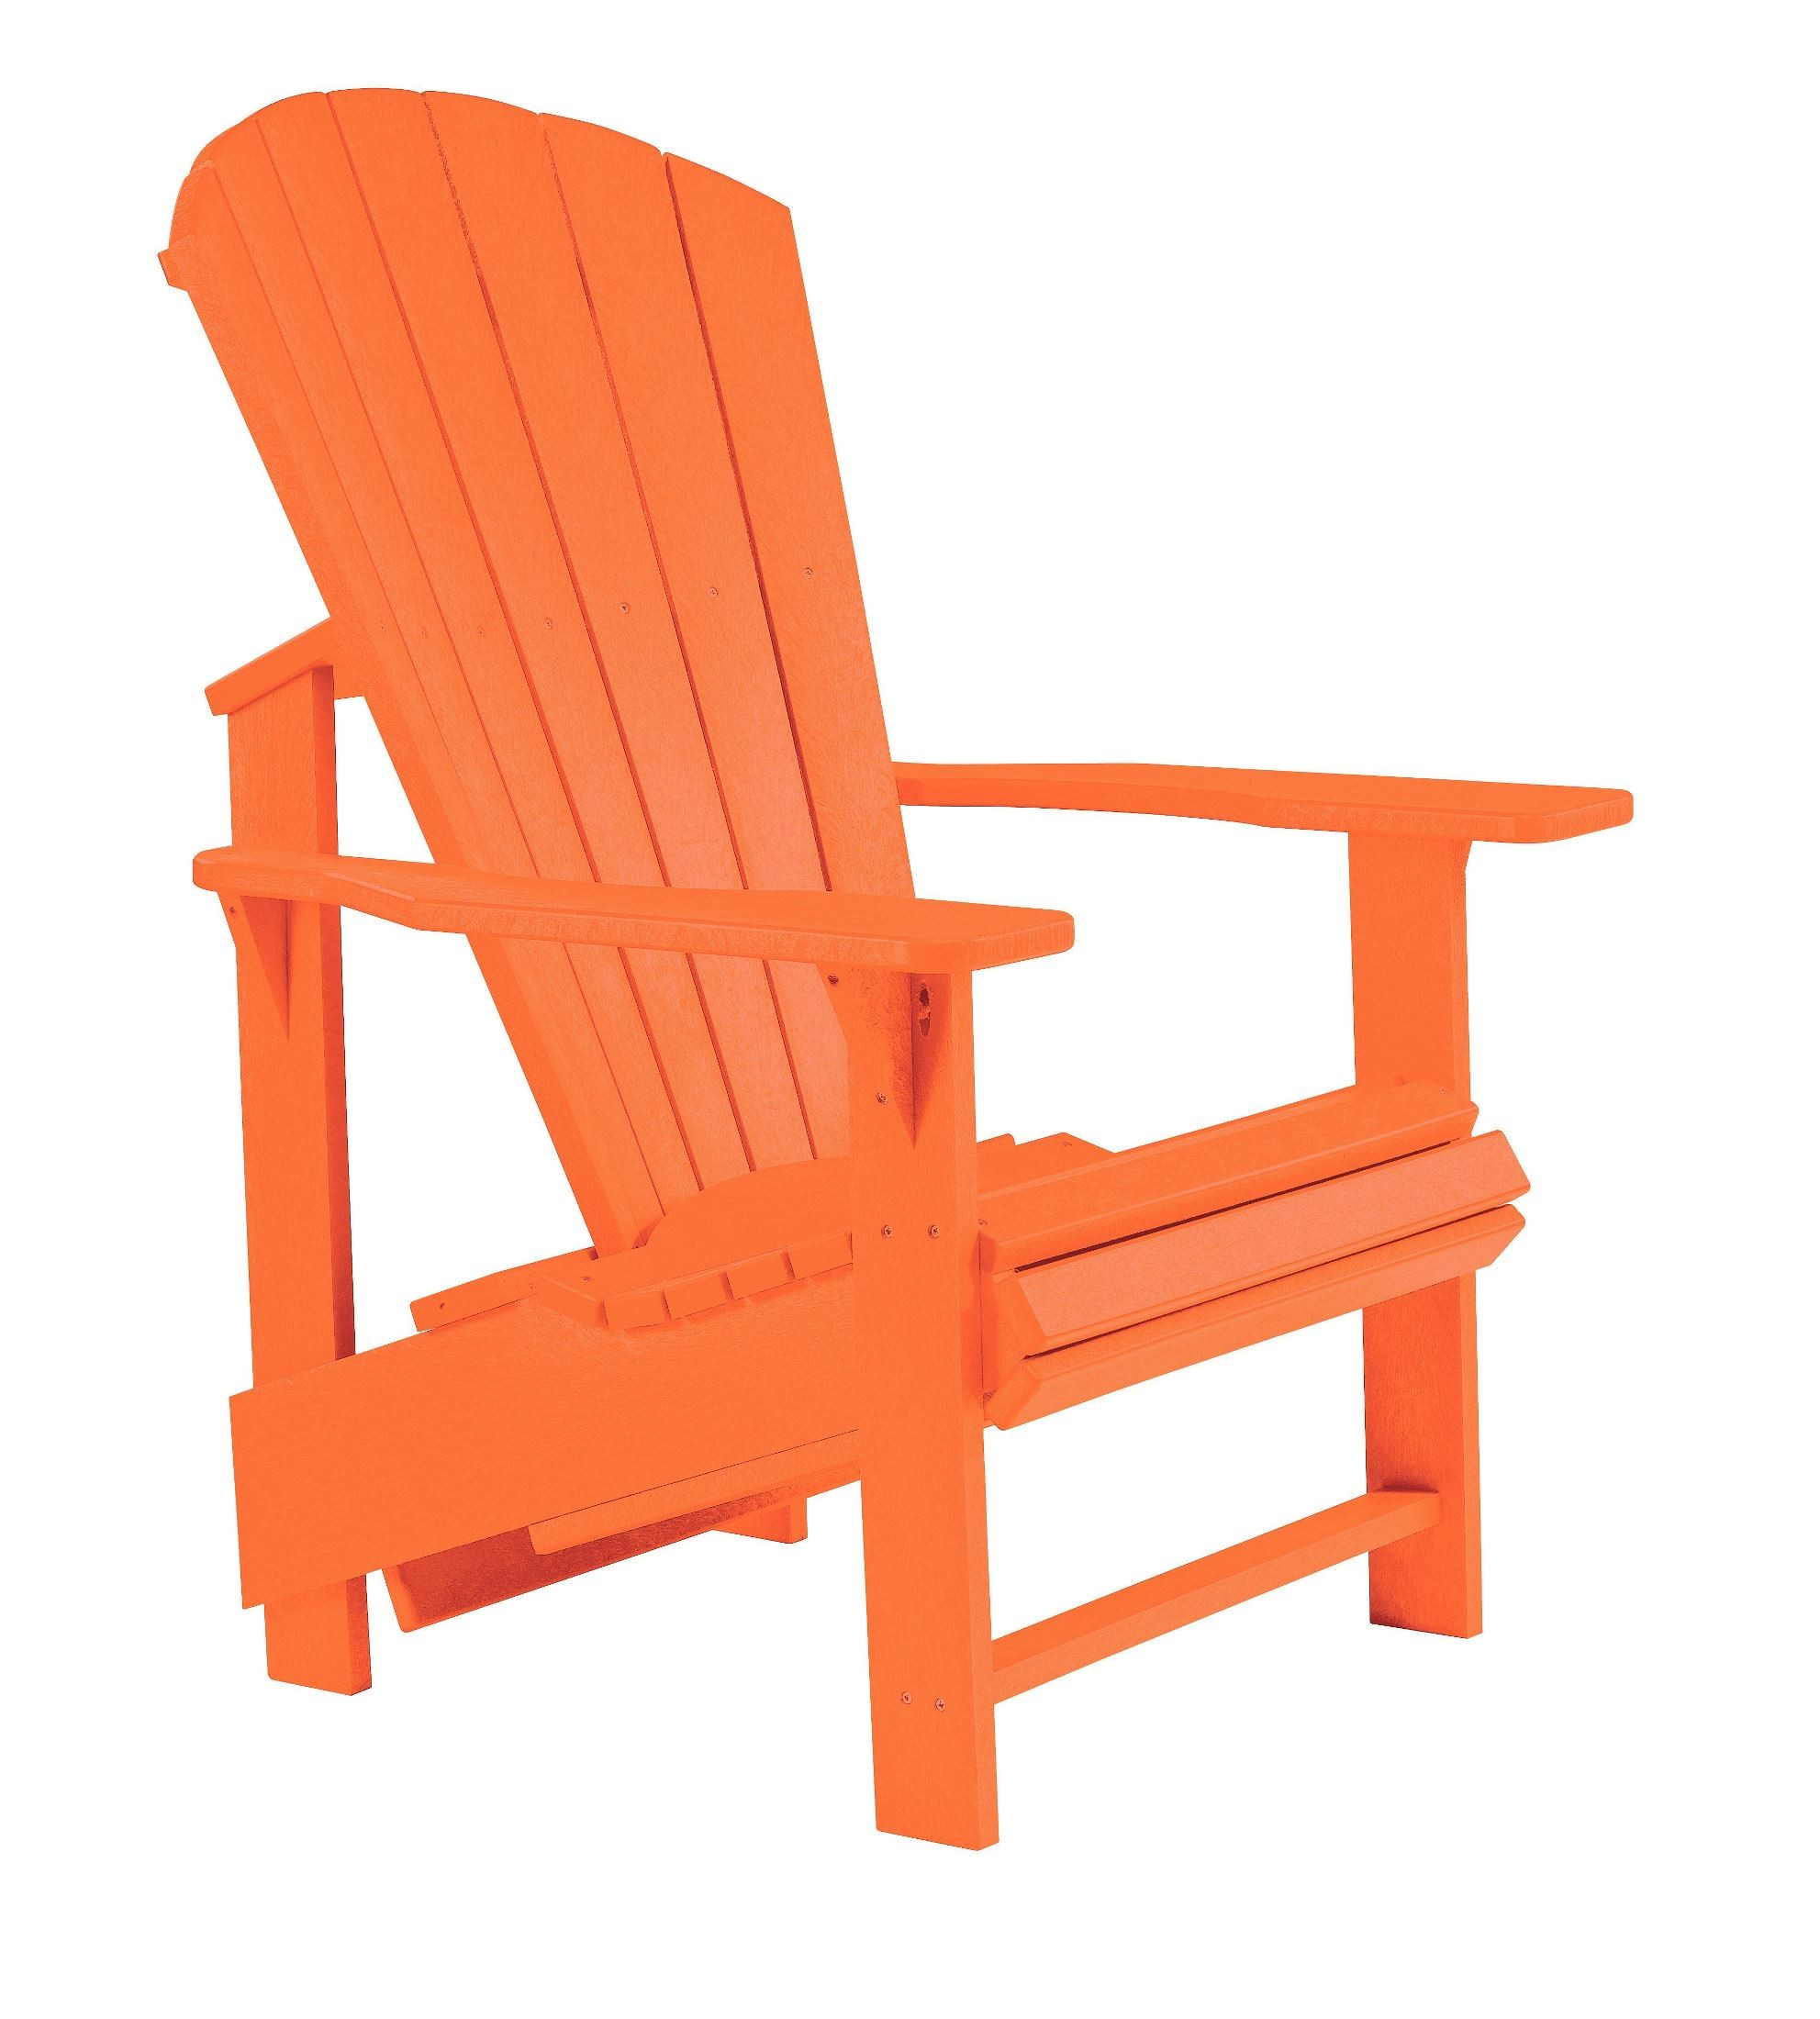 Generations Orange Upright Adirondack Chair From Cr